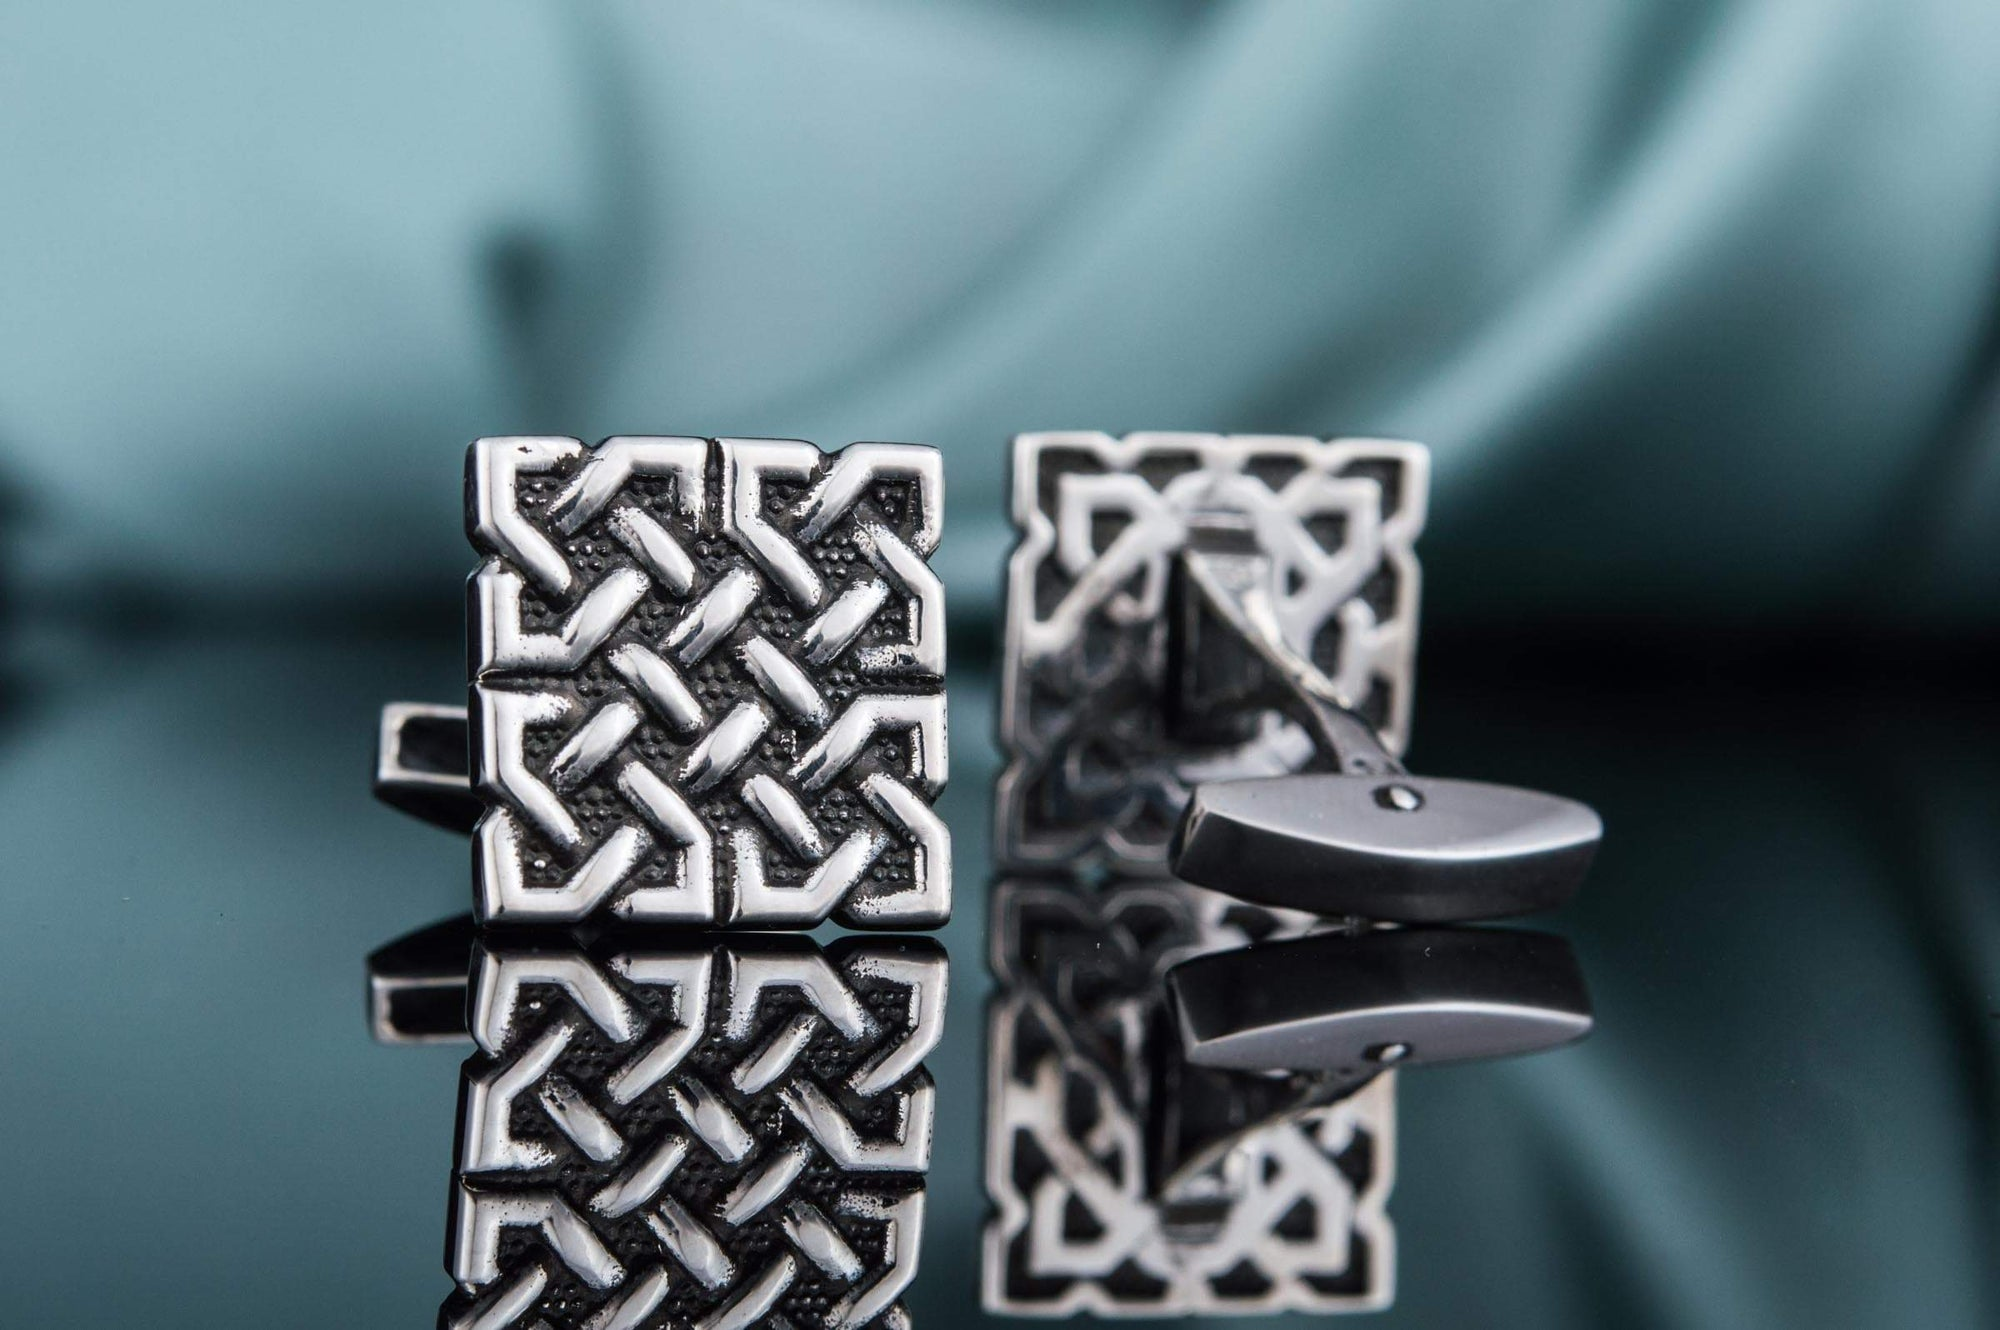 Cufflinks Celtic Square Knot Sterling Silver Handmade Cufflinks Ancient Treasures Ancientreasures Viking Odin Thor Mjolnir Celtic Ancient Egypt Norse Norse Mythology